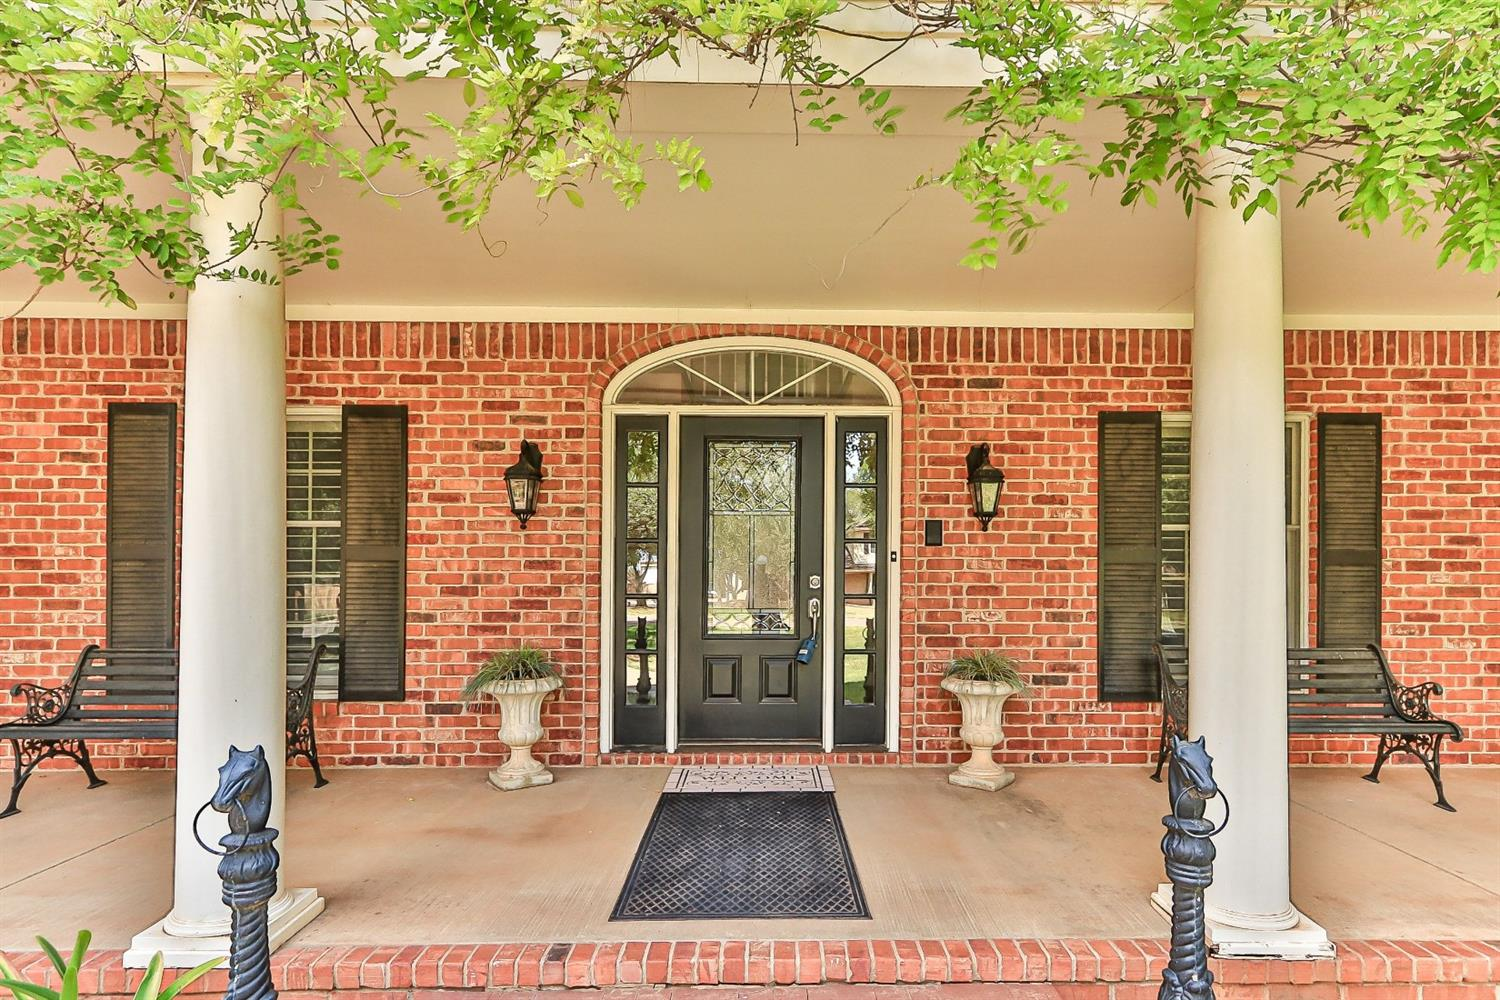 When a Touch of New Orleans Meets a Tropical Oasis MAGIC Happens!The Complete Package in Papalote Estates...Just Under One Acre,40'X44'SHOP plus 14'X44' RV Storage, Frenship ISD-With Strong Southern Roots This Home Will Sweetly Draw You in & Invite You to Stay Awhile-Columns Frame The Entry & Upstairs Balcony-Rich Hardwood Flooring,Double Barrel Ceiling & Two Fireplaces-FOUR Living Areas including BASEMENT & Sunporch that was the Family Gameroom-Dine 3 Ways,Formal,Casual,Bar Seating-Updated Kitchen w/Travertine,Granite,Stainless Appliances,Double Ovens & Induction Cooktop-Elegant Master Suite w/Adjacent Patio...Airflow Tub,Separate Shower,Dual Vessel Sinks,Dressing Area-3 Bedrooms,2 Baths Upstairs + a Cool Hidden Room-Vacation Plans on Hold...No Worries...The Greenhouse is Your Tropical Oasis W/Limes,Avocados,Tangerines & More Surrounding Your In-Ground Pool-Gazebo & More Storage- Gorgeous Iron Gate-So Much To Explore,Discover and Share in This Remarkable Place to Call HOME!